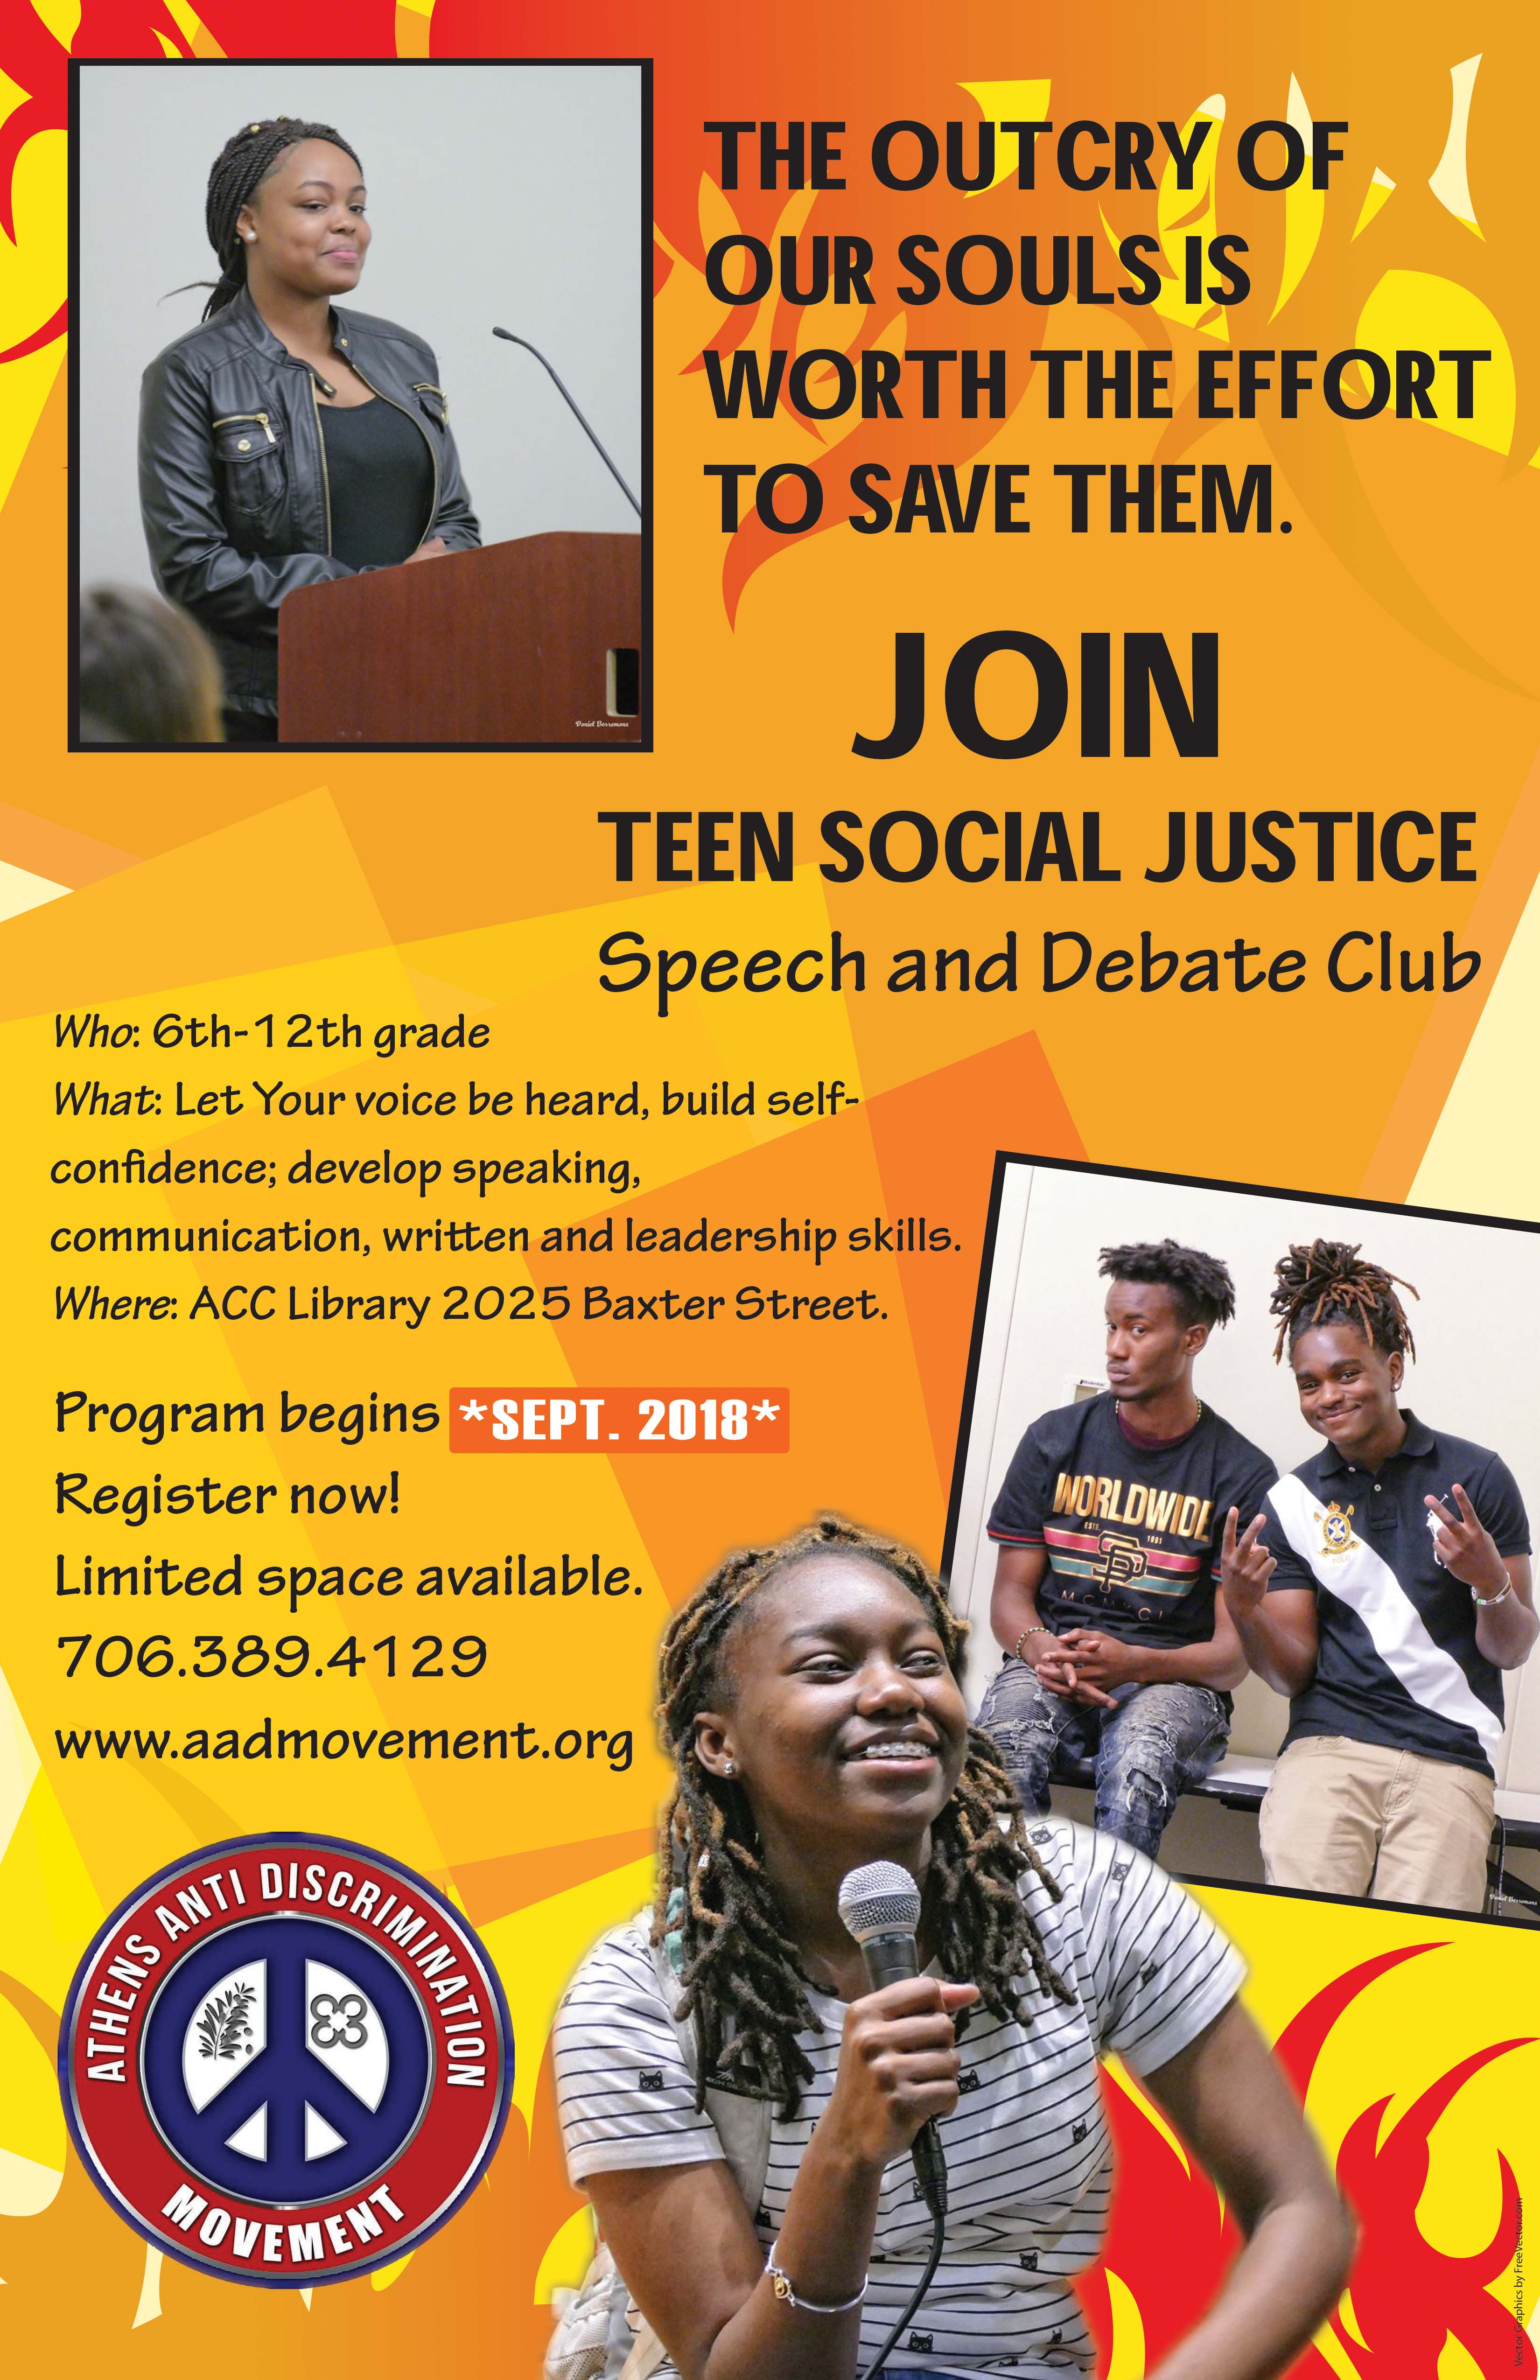 Teen Social Justice Speech & Debate Club